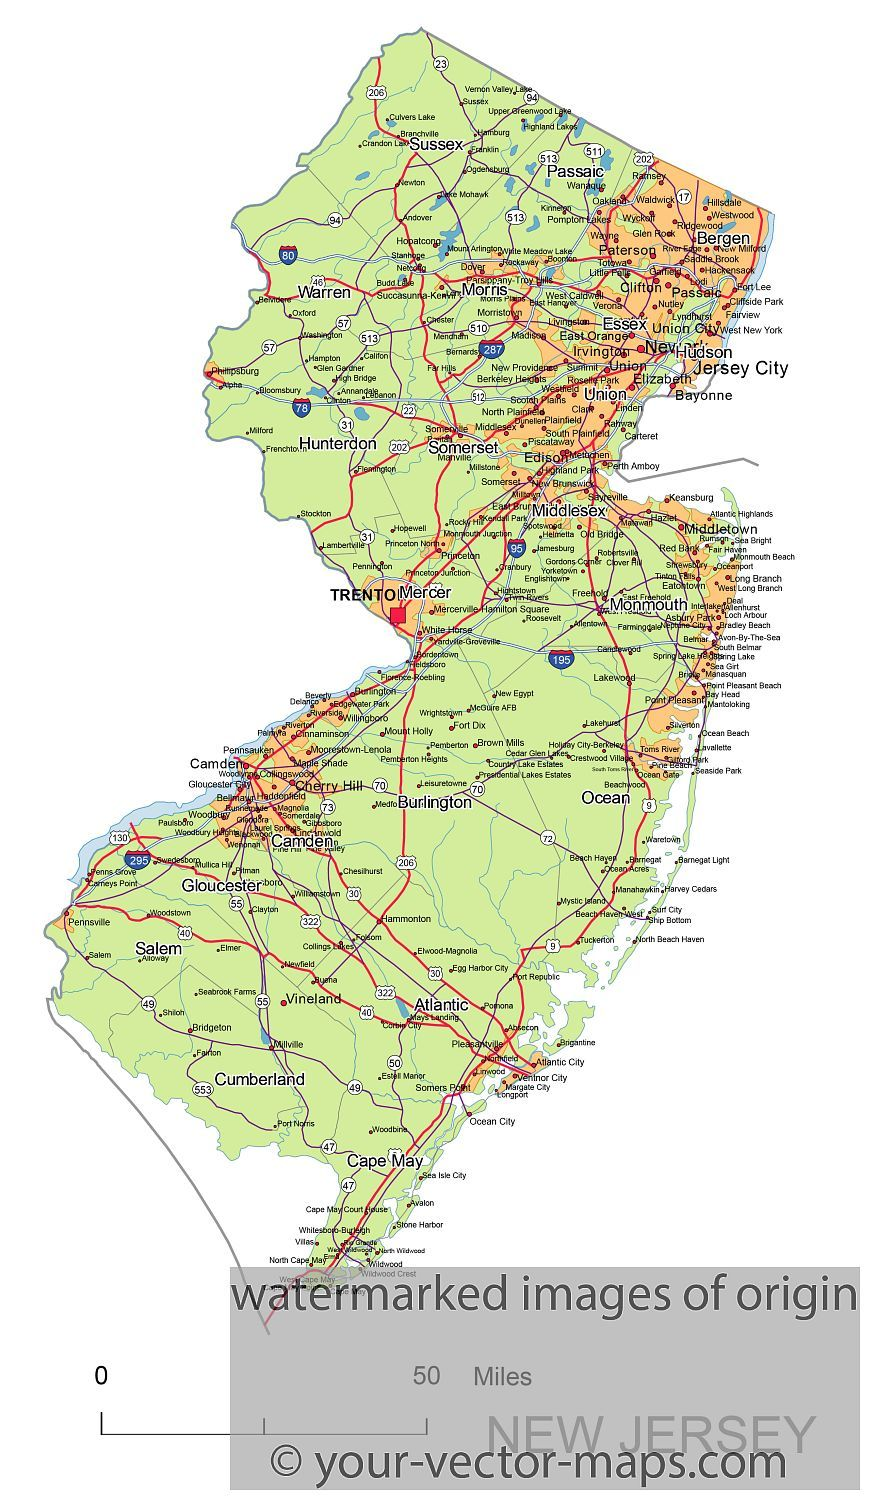 New Jersey state route network map. New Jersey highways map. Cities on